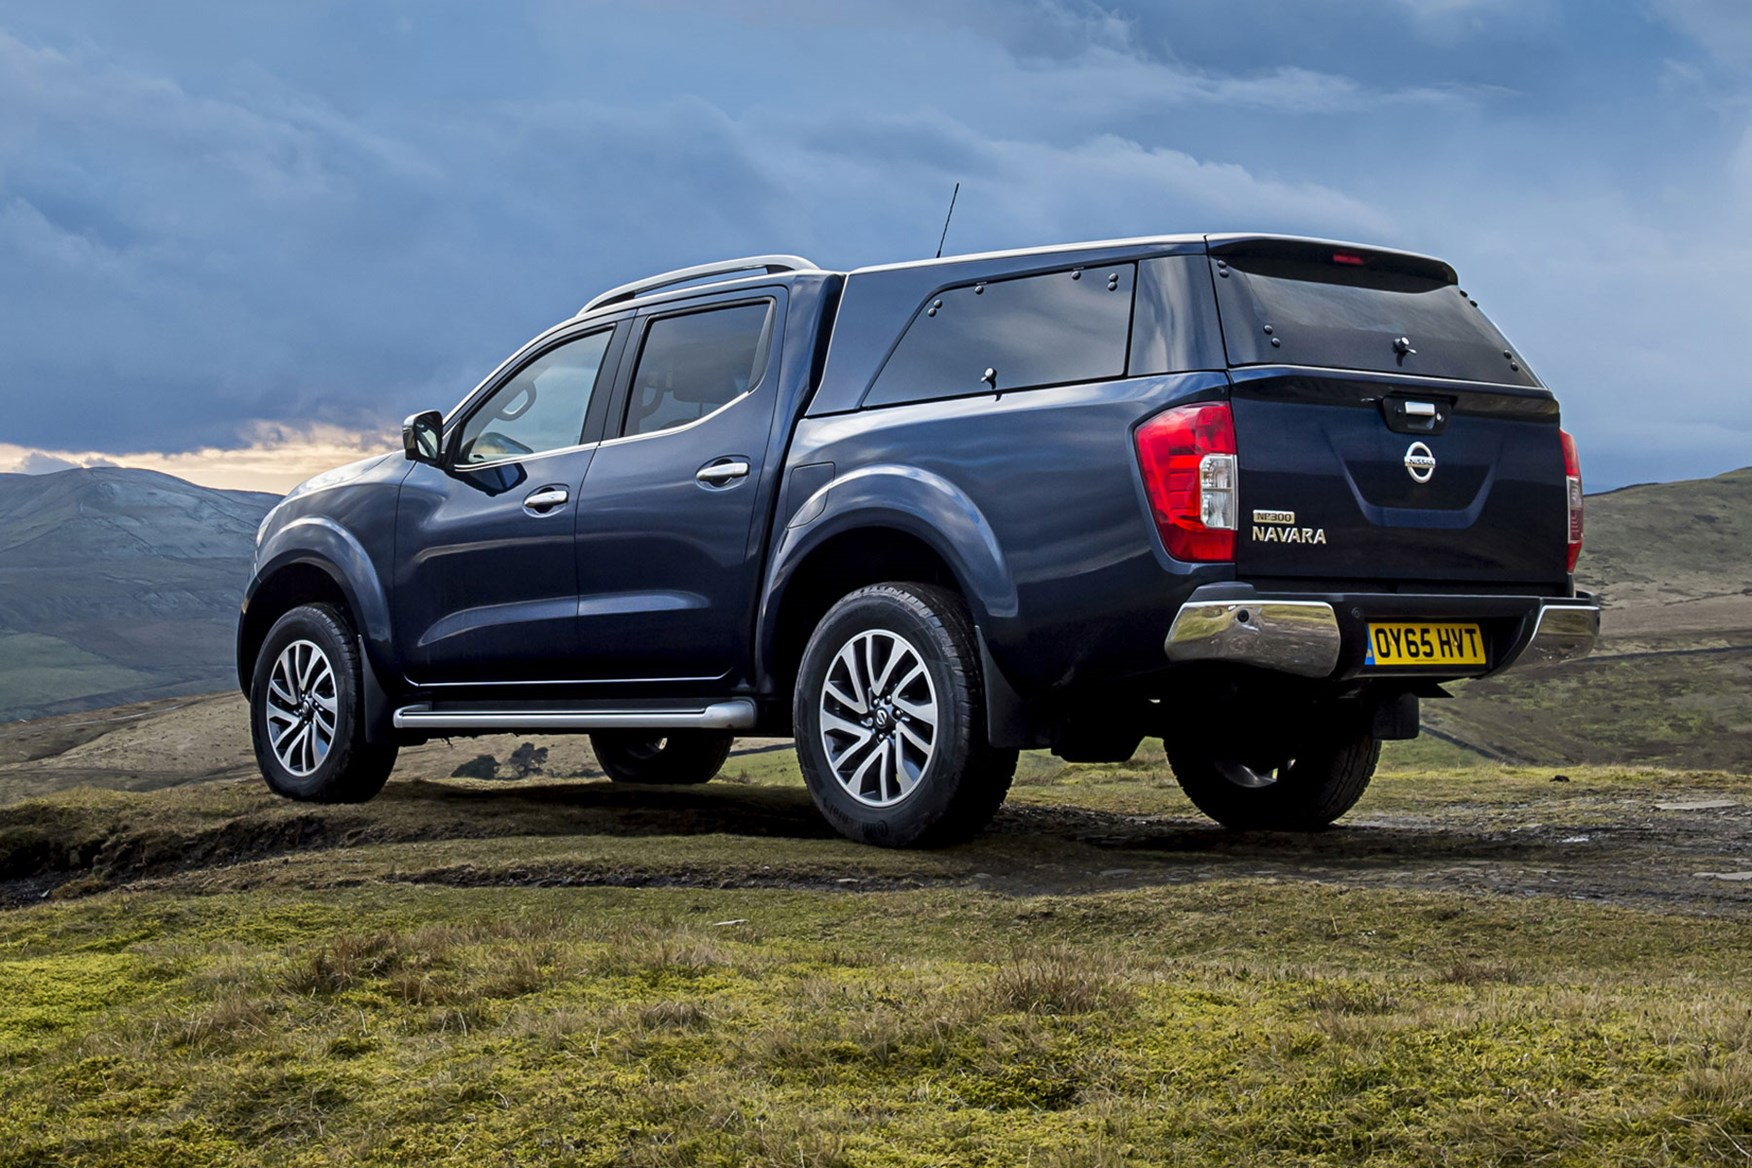 Nissan Navara review - rear view, blue, with hardtop